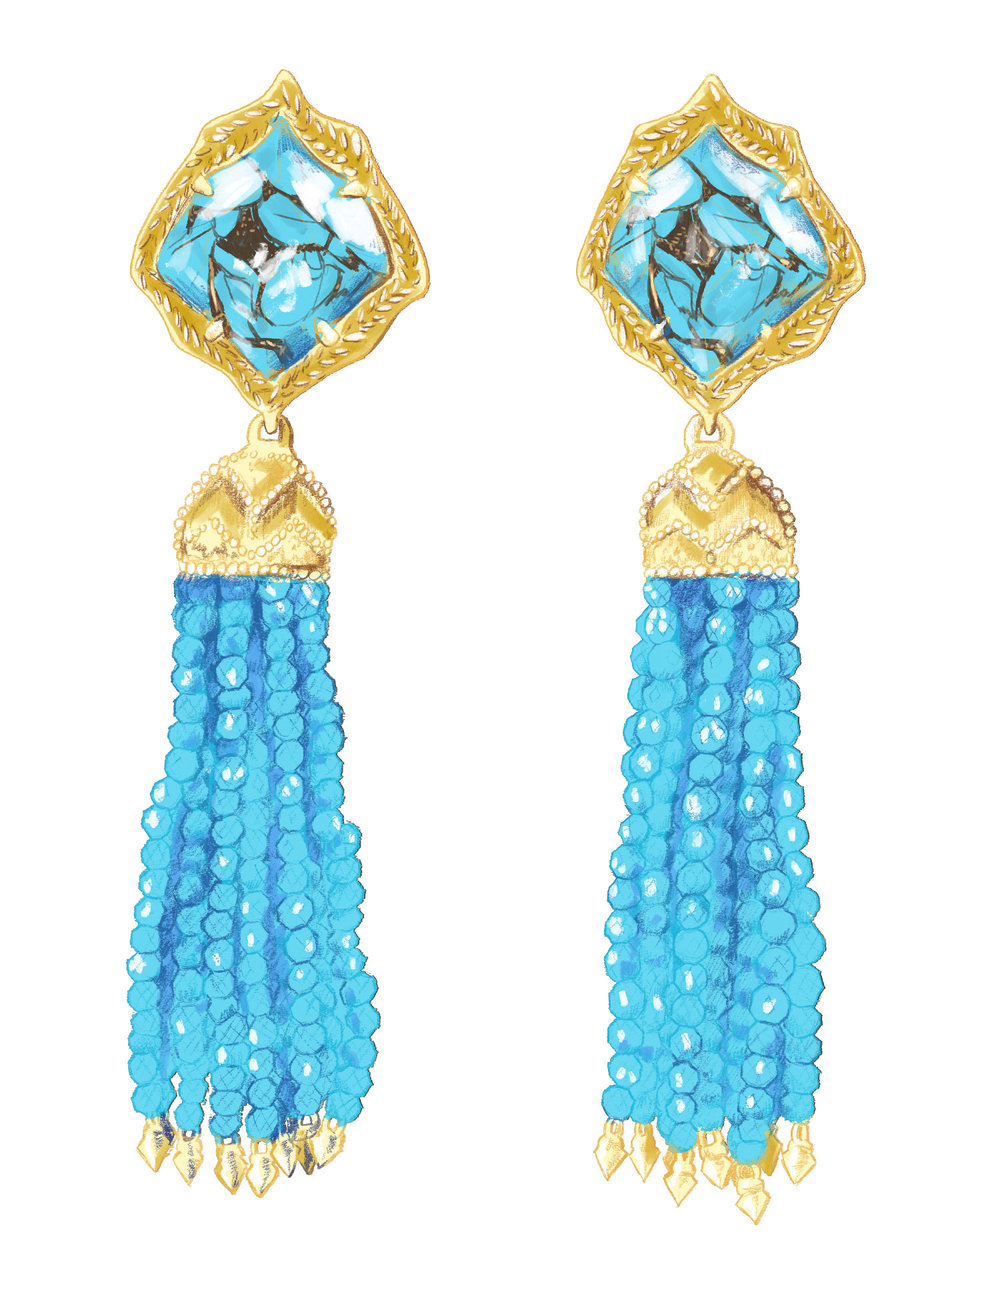 fig. 7. Misha Earrings in turqoise illustration